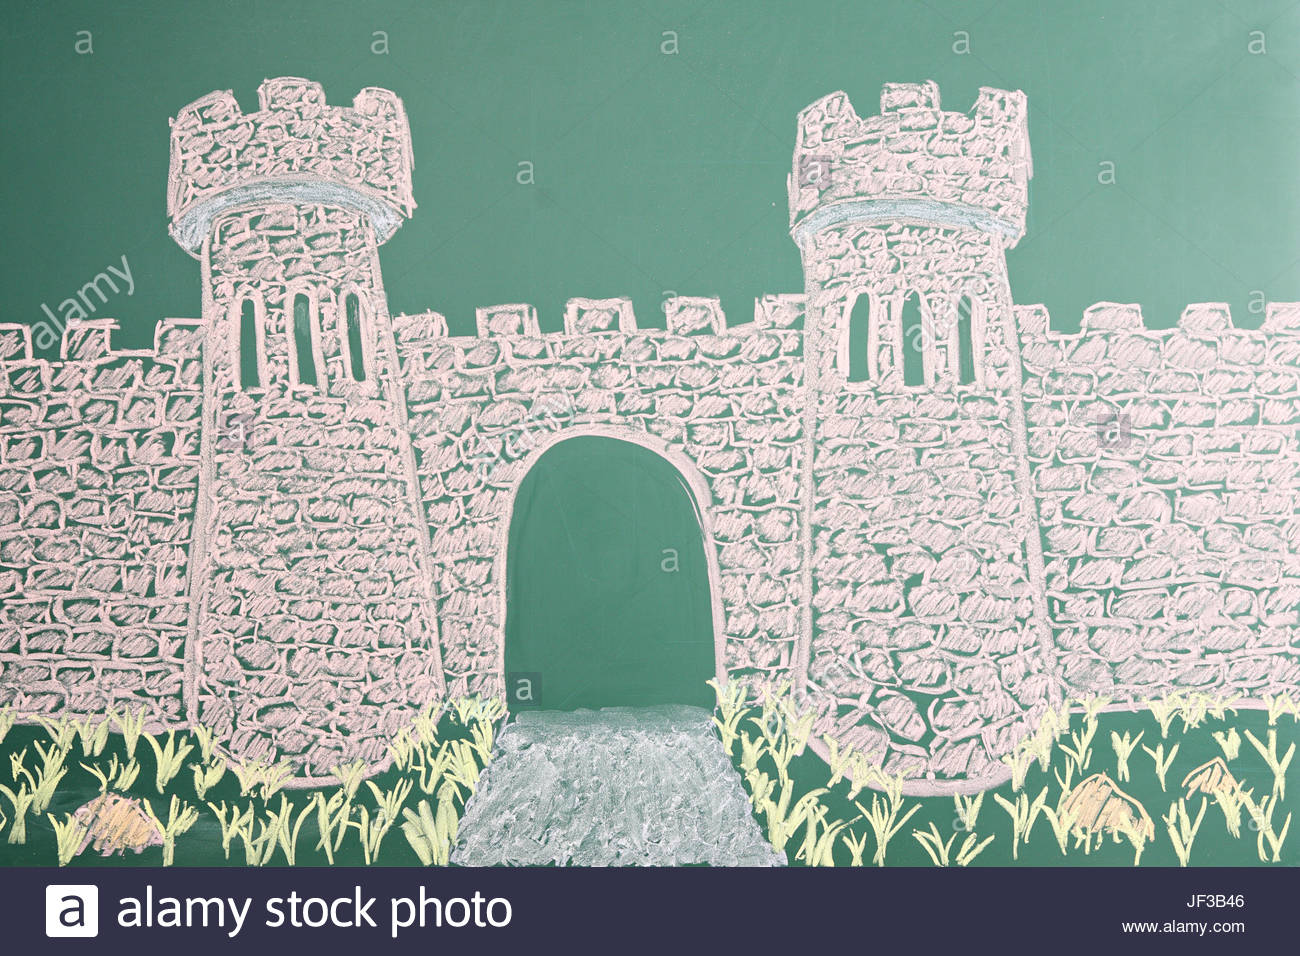 1300x956 Education Concept. Chalk Drawing Of Castle With Open Gate Stock